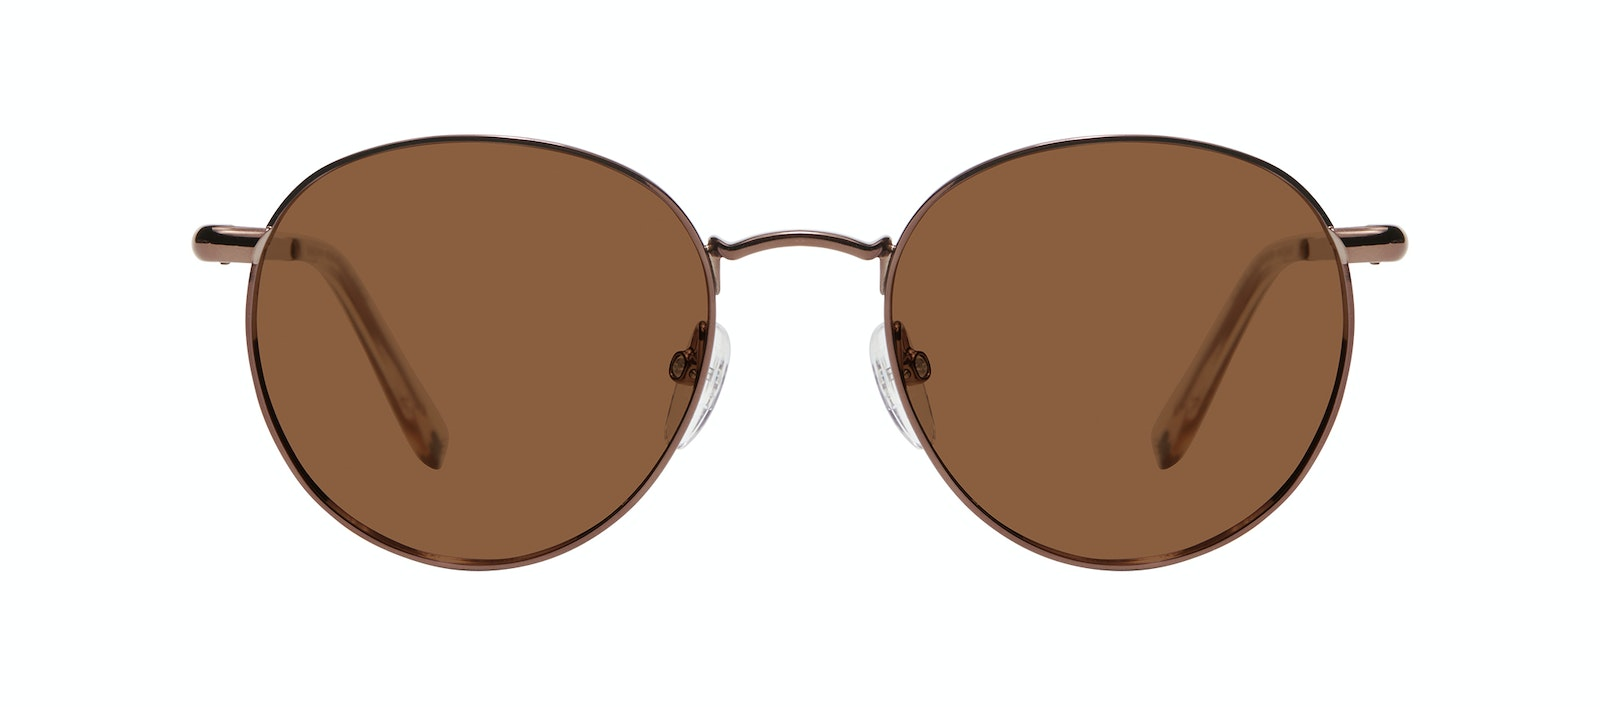 Affordable Fashion Glasses Round Sunglasses Women Dynasty M Copper Front